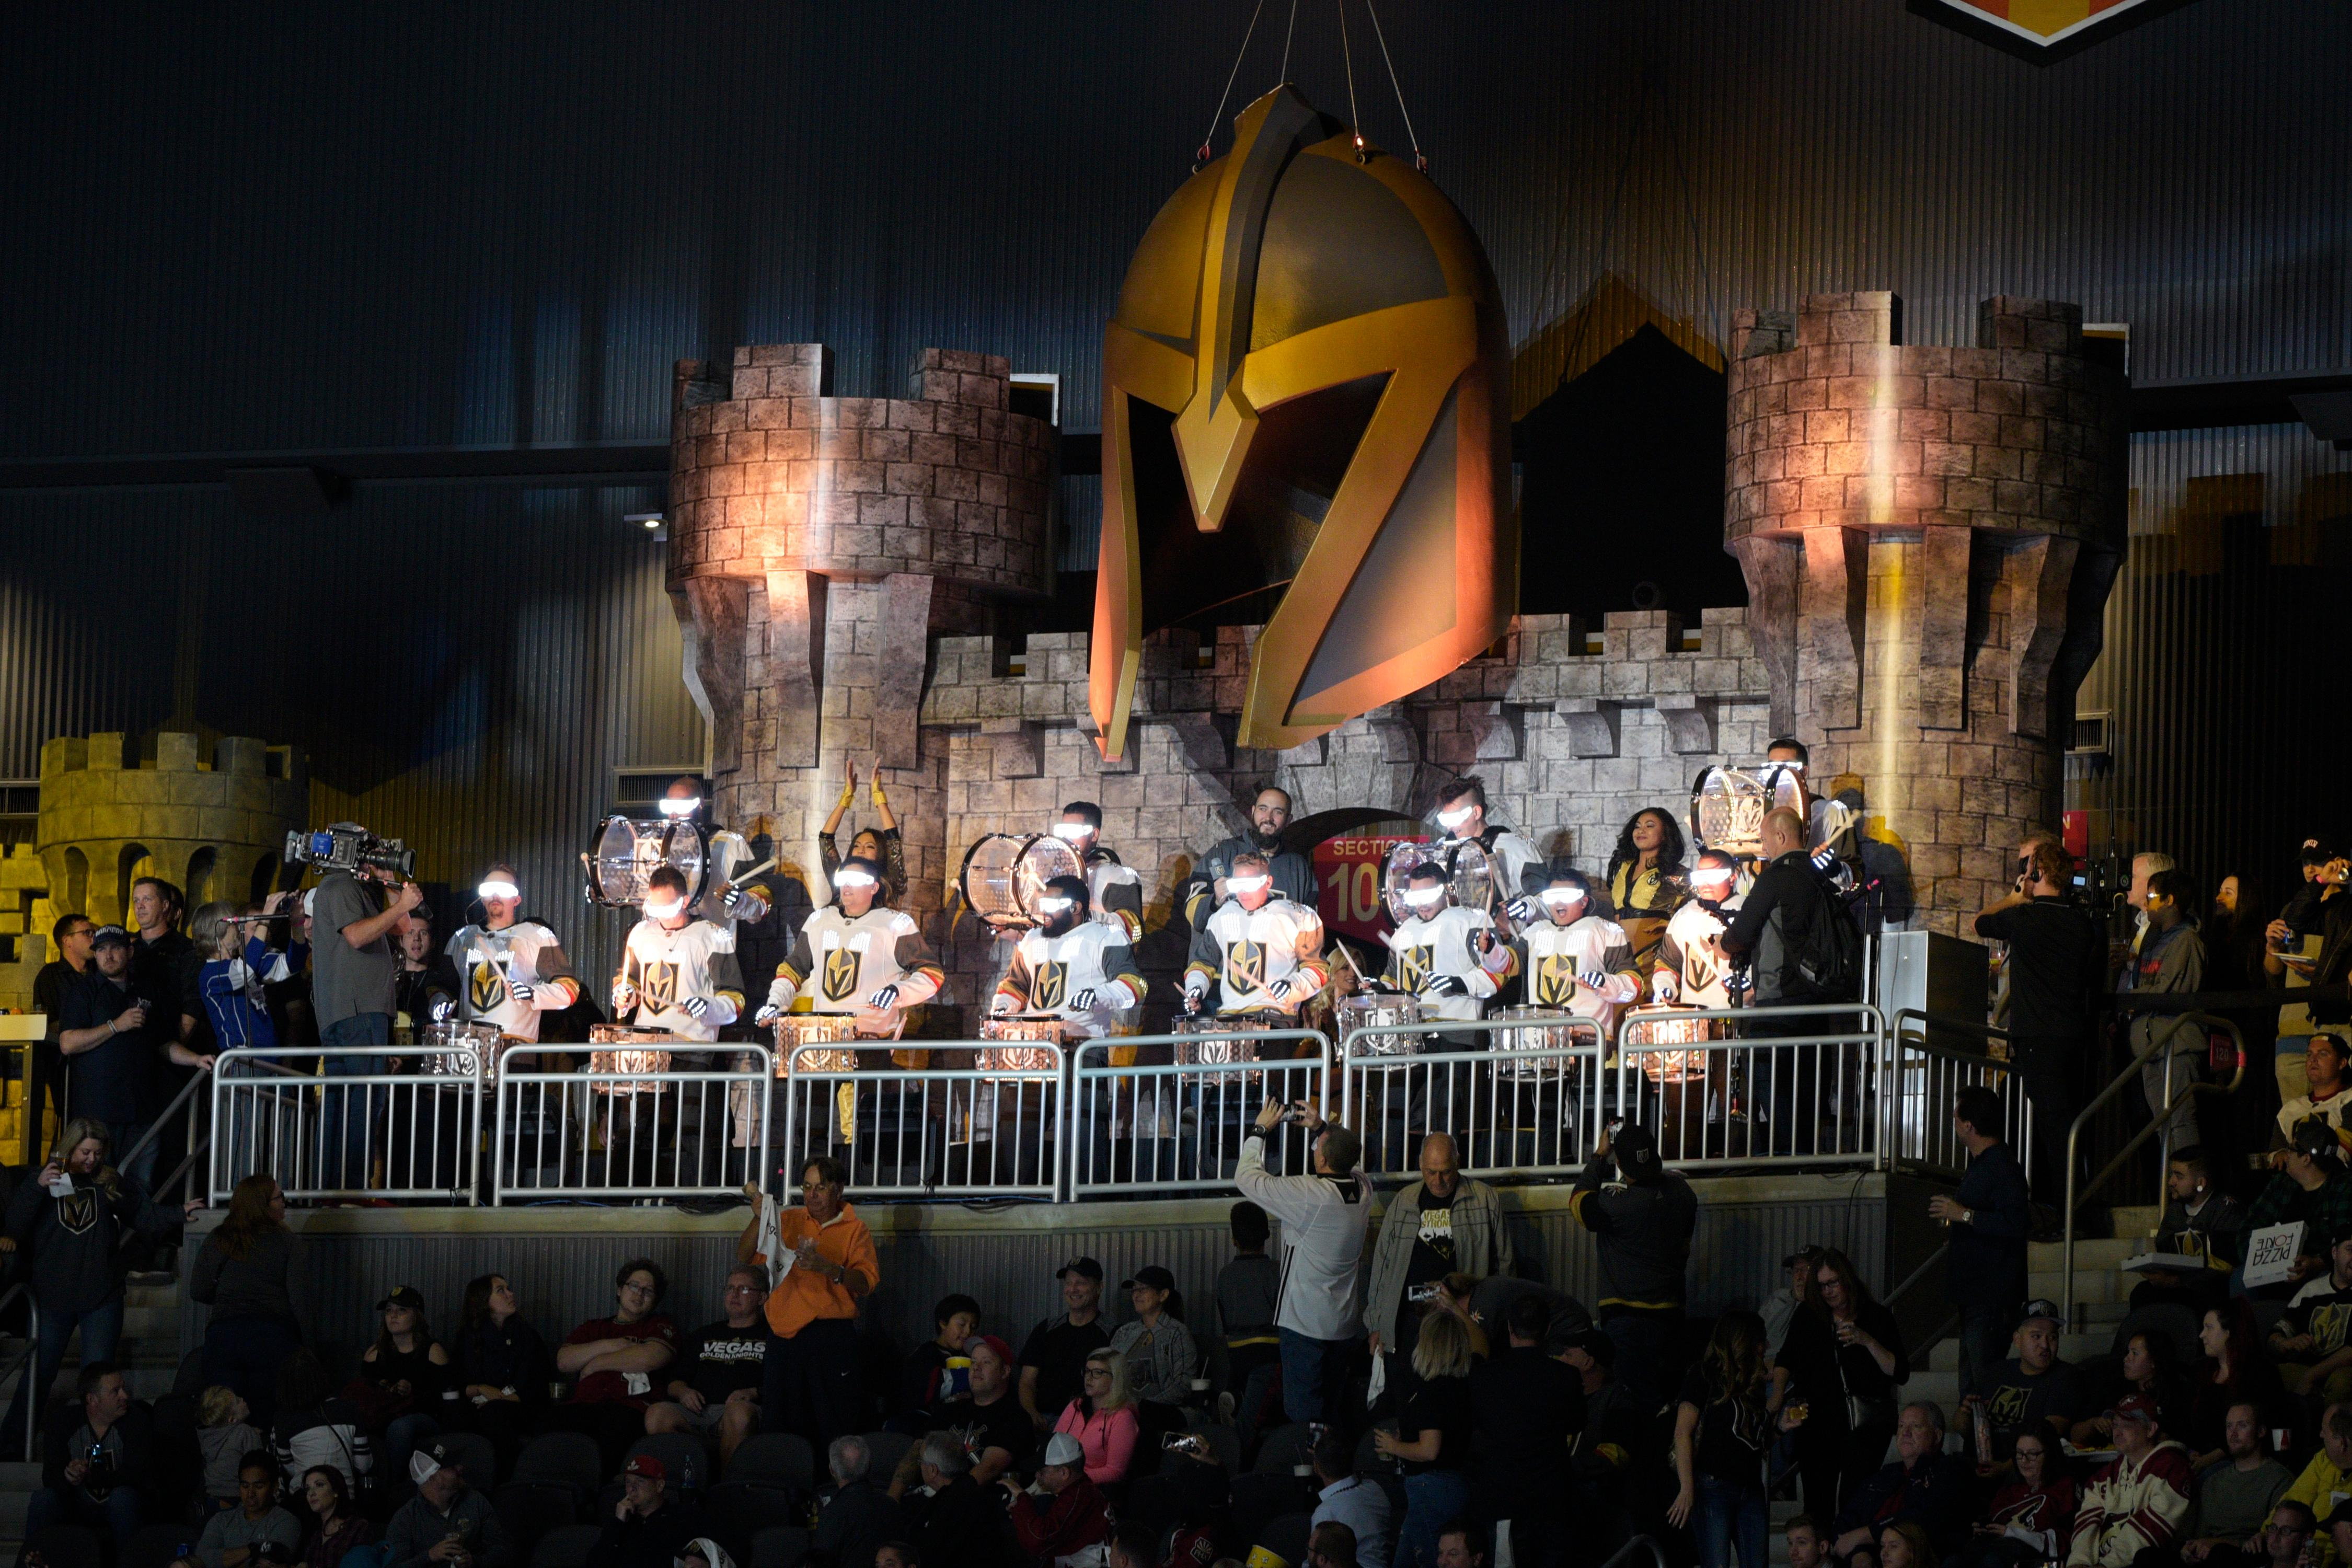 The Knight Line drum line performs during the Vegas Golden Knights home opener against the Arizona Coyotes Tuesday, Oct. 10, 2017, at the T-Mobile Arena. The Knights won 5-2 to extend their winning streak to 3-0. CREDIT: Sam Morris/Las Vegas News Bureau